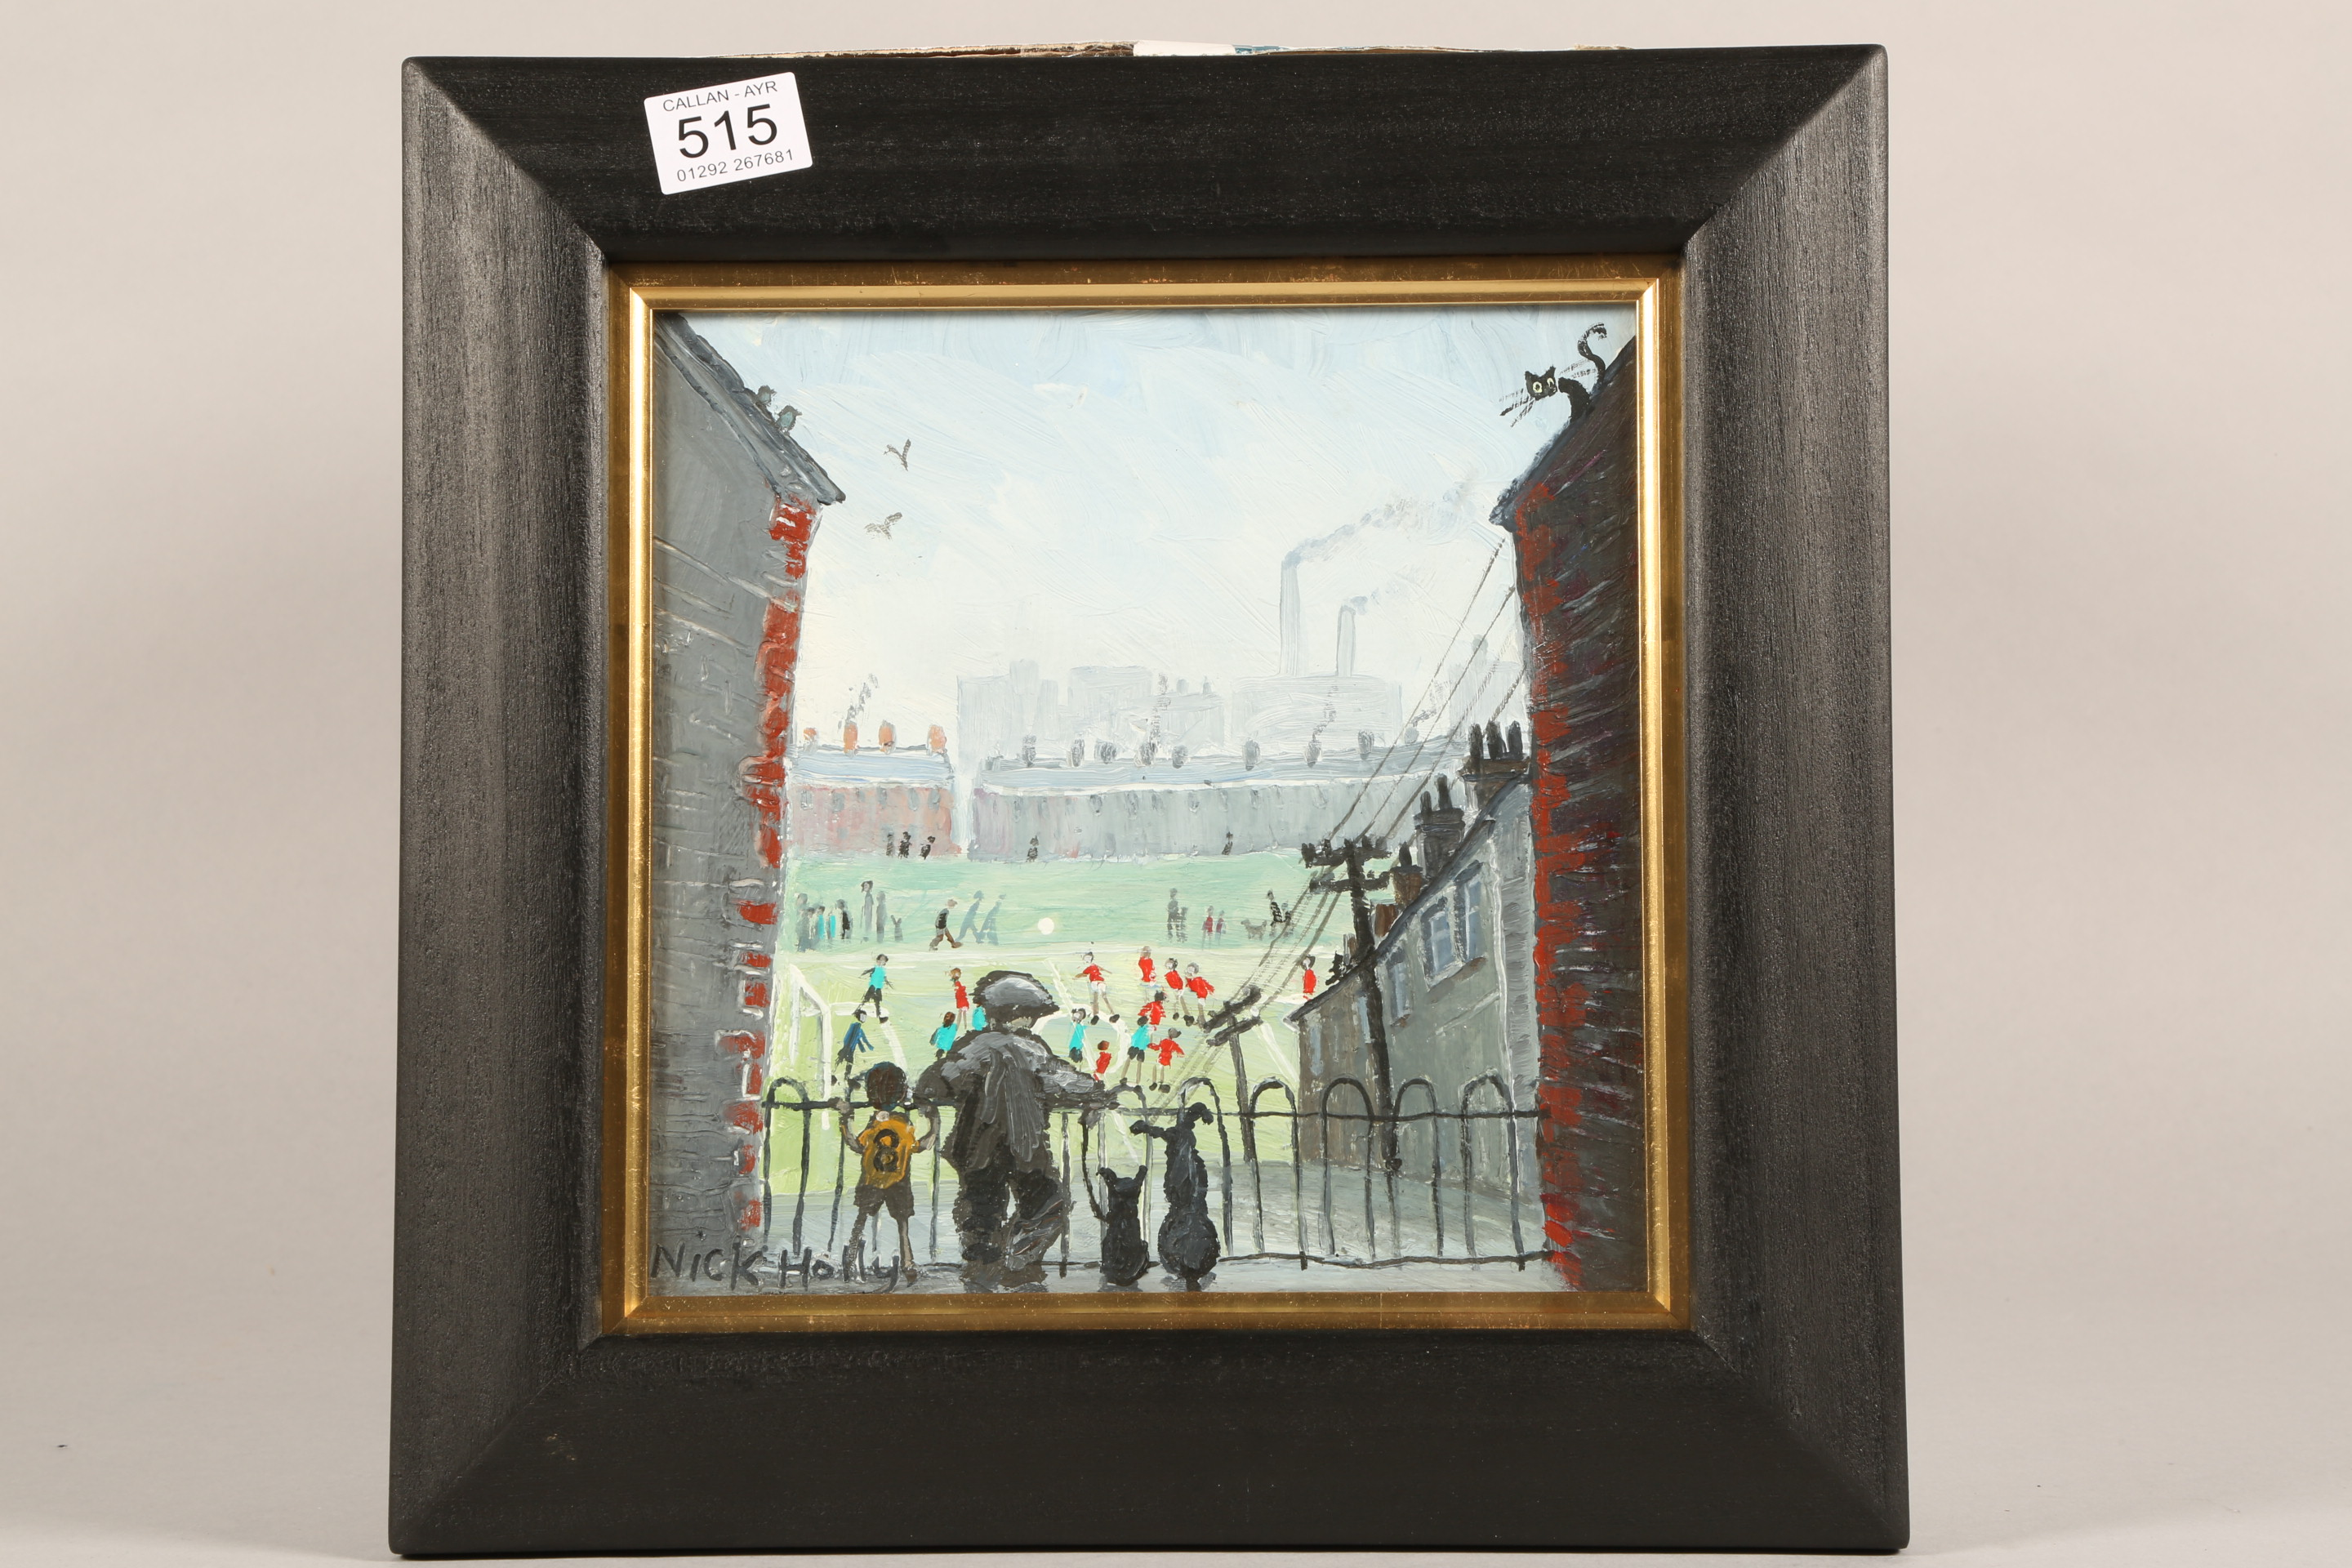 Nick Holly (Welsh Contemporary) ARR Framed oil on board, signed 'The Football Match' 20cm x 20cm - Image 2 of 3